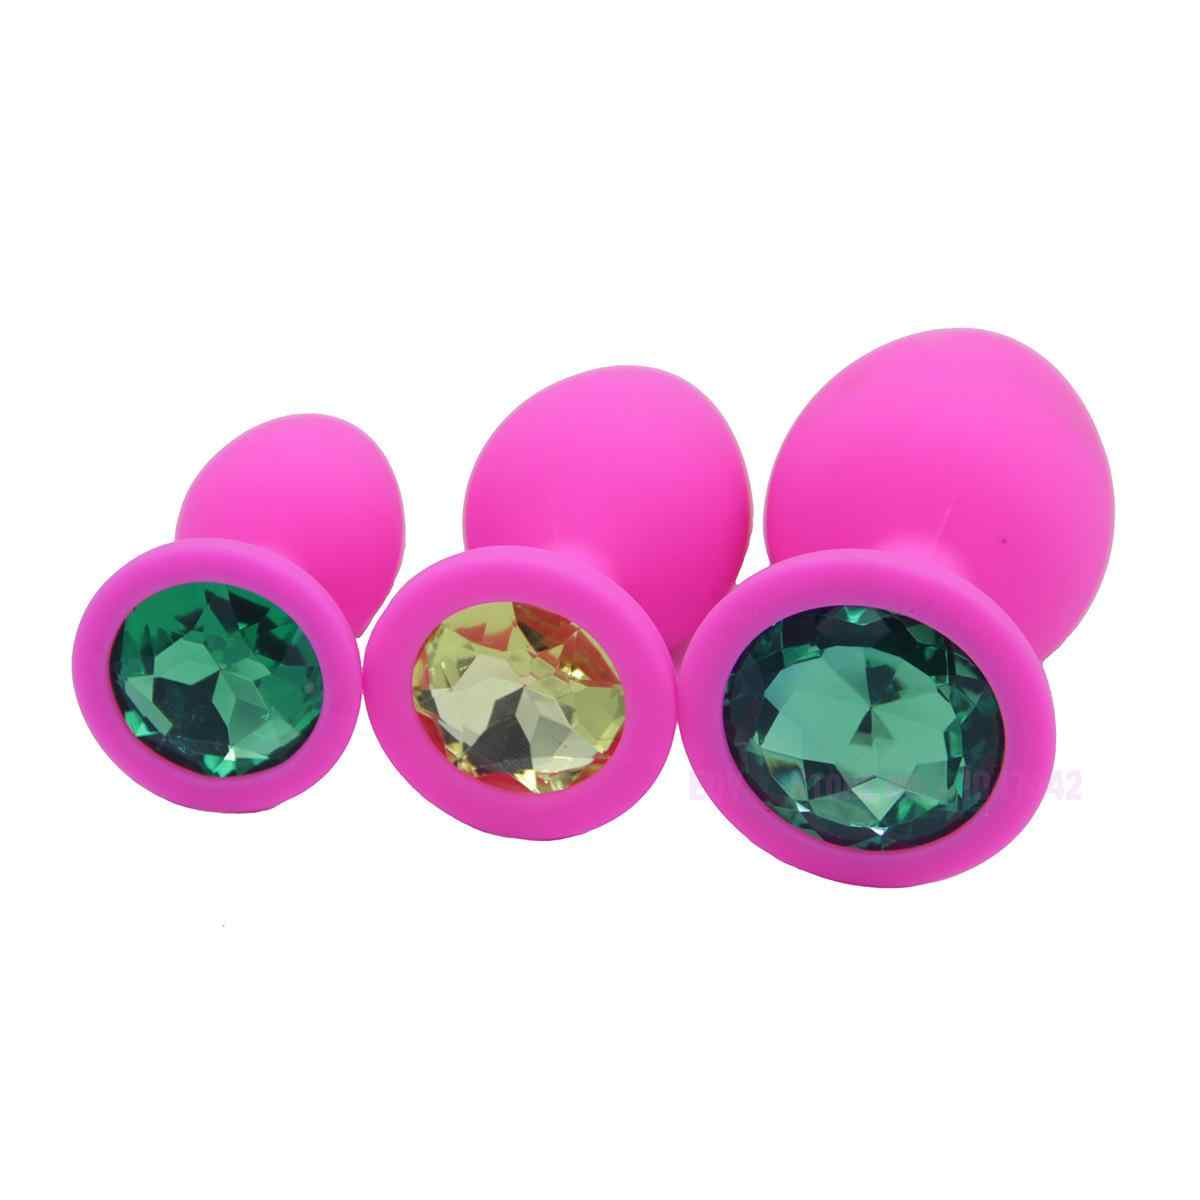 9a5d2f829 ... 3 Size Silicone Anal Beads Butt Plug With Stone Adult Gay Products Anal  Plug Balls Erotic ...